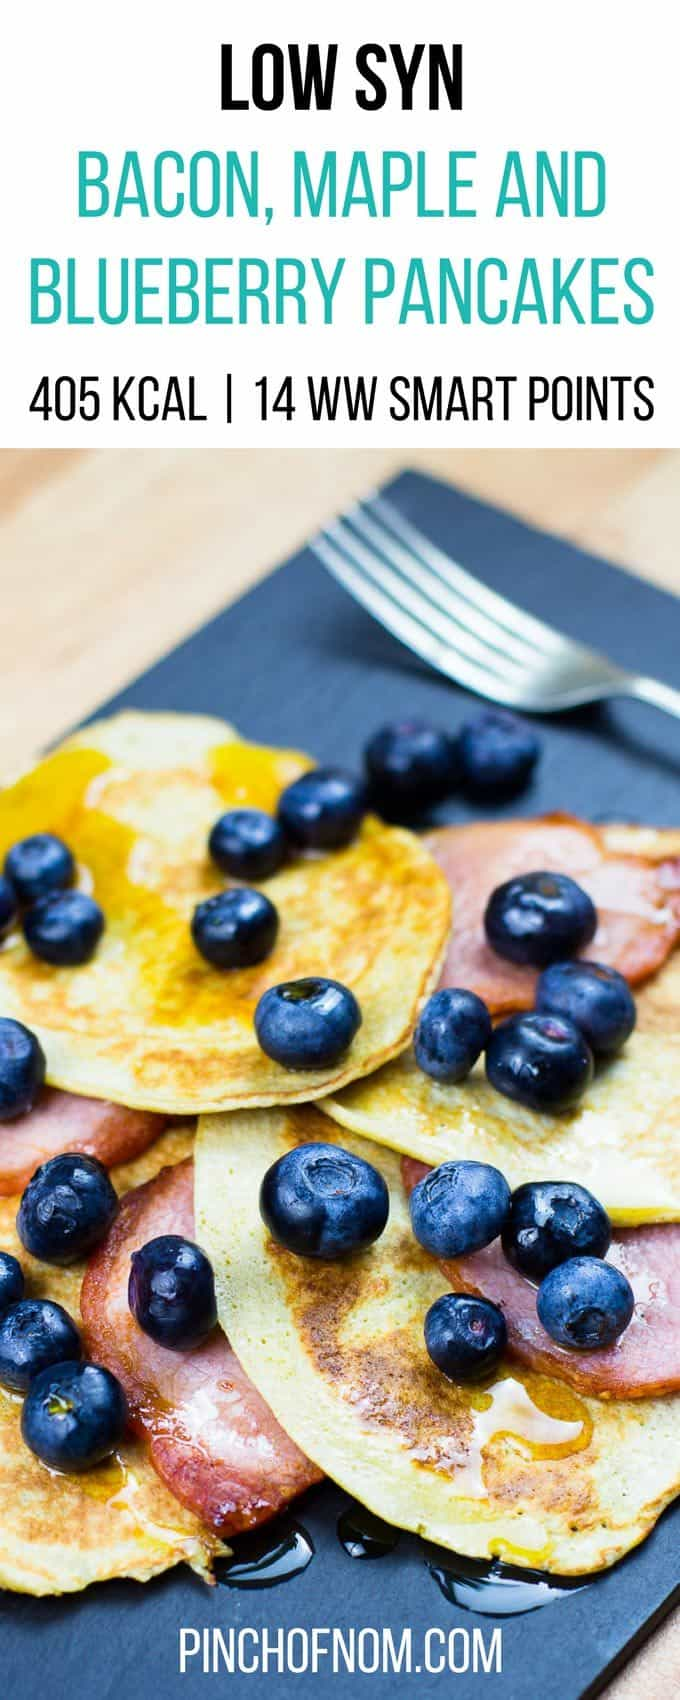 Bacon, Maple and Blueberry Pancakes | Slimming World & Weight Watchers Friendly